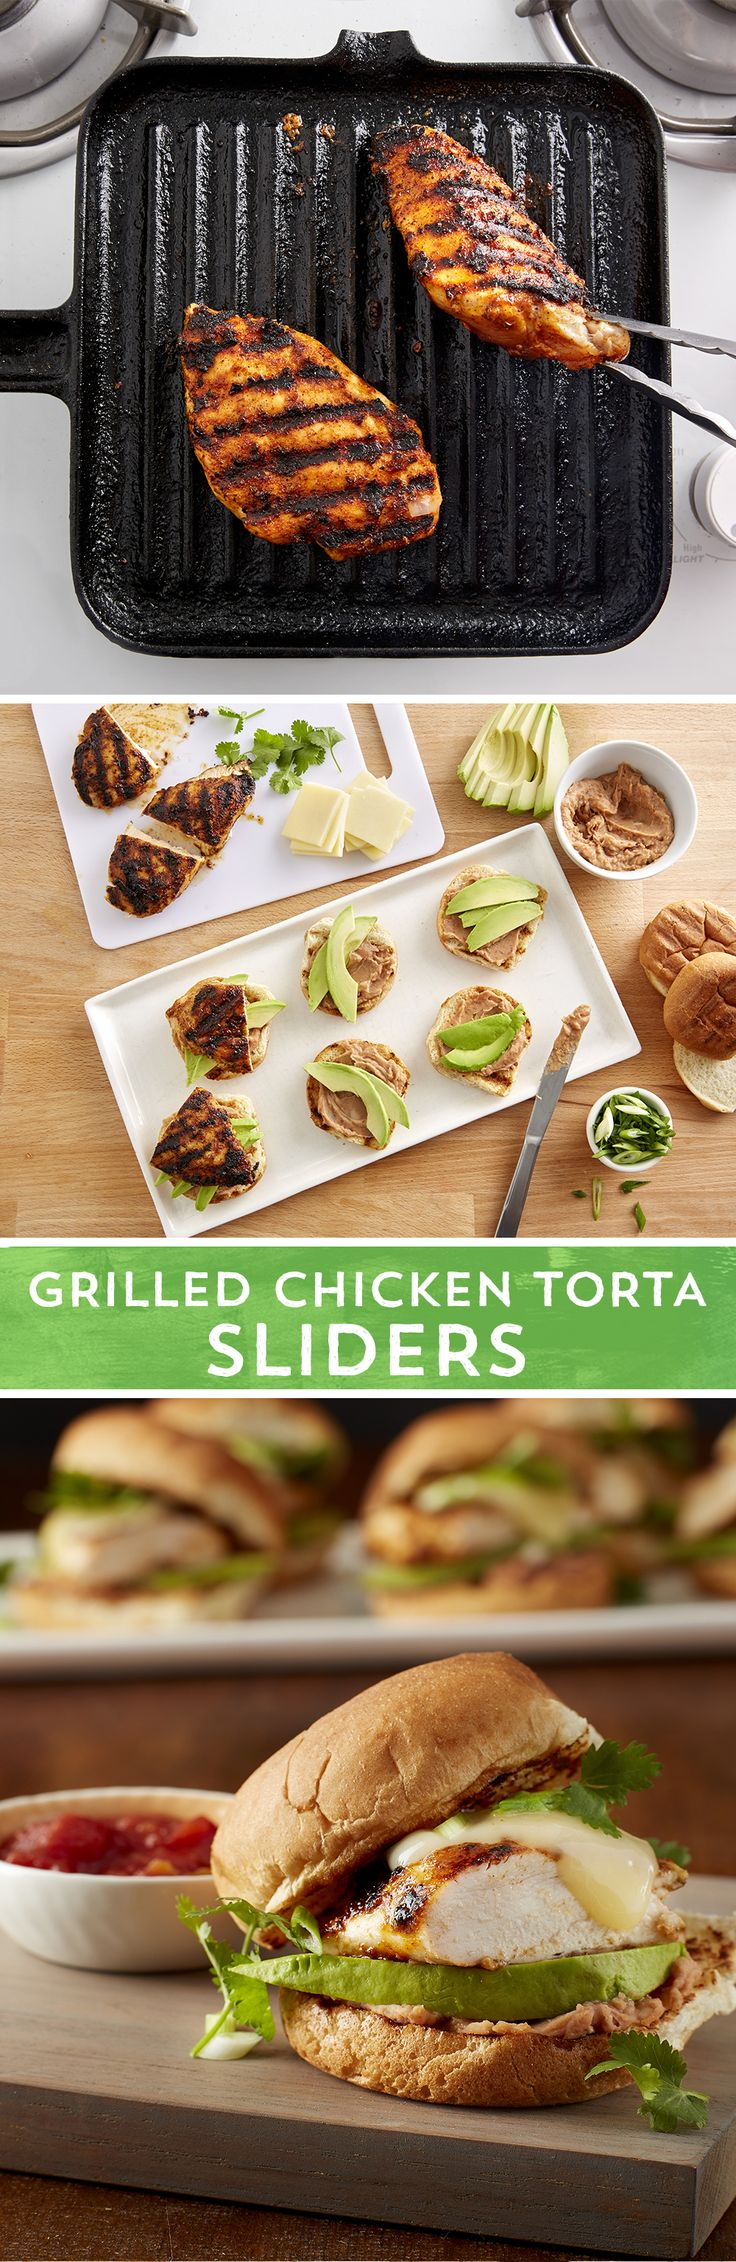 Perfect party-sized chicken sandwiches with a Mexican flair. Take plain chicken up a notch by coating it with oil and Old El Paso™ chicken seasoning before grilling. Old El Paso™ refried beans create a savory spread for toasted buns and the perfect bed for the grilled chicken, avocado, Monterey Jack cheese, green onions, and salsa. These torta sliders are sure to be a Cinco (and everyday) favorite.